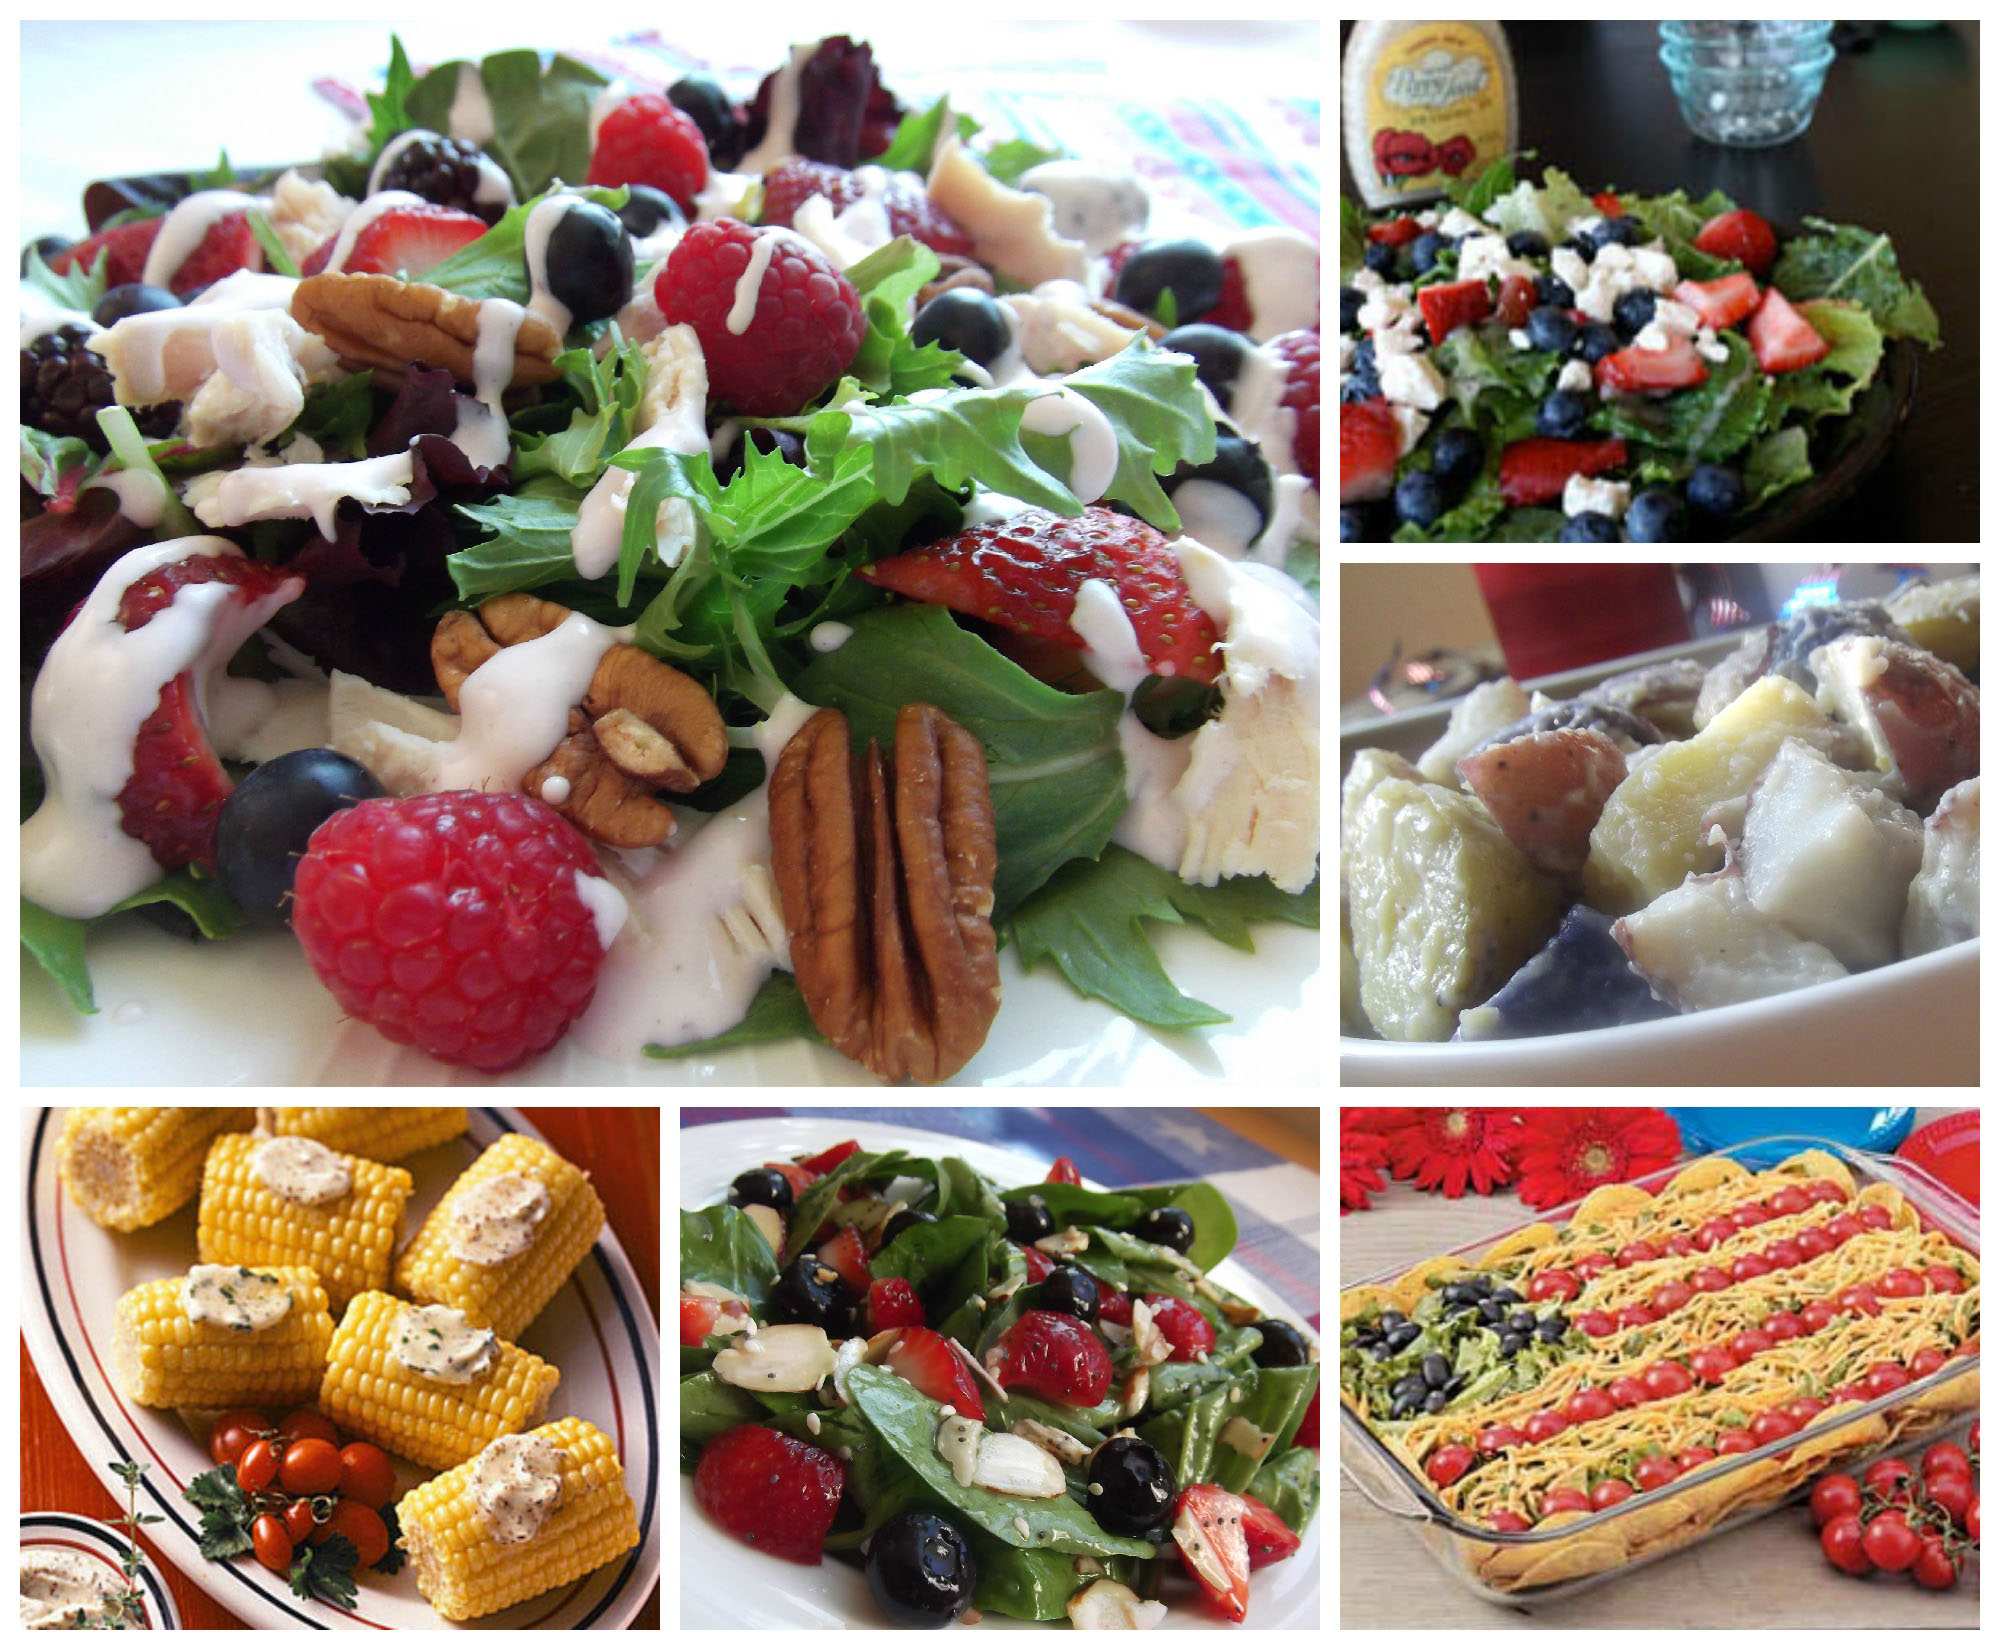 July 4th Salad and Side Dish Ideas and Recipes